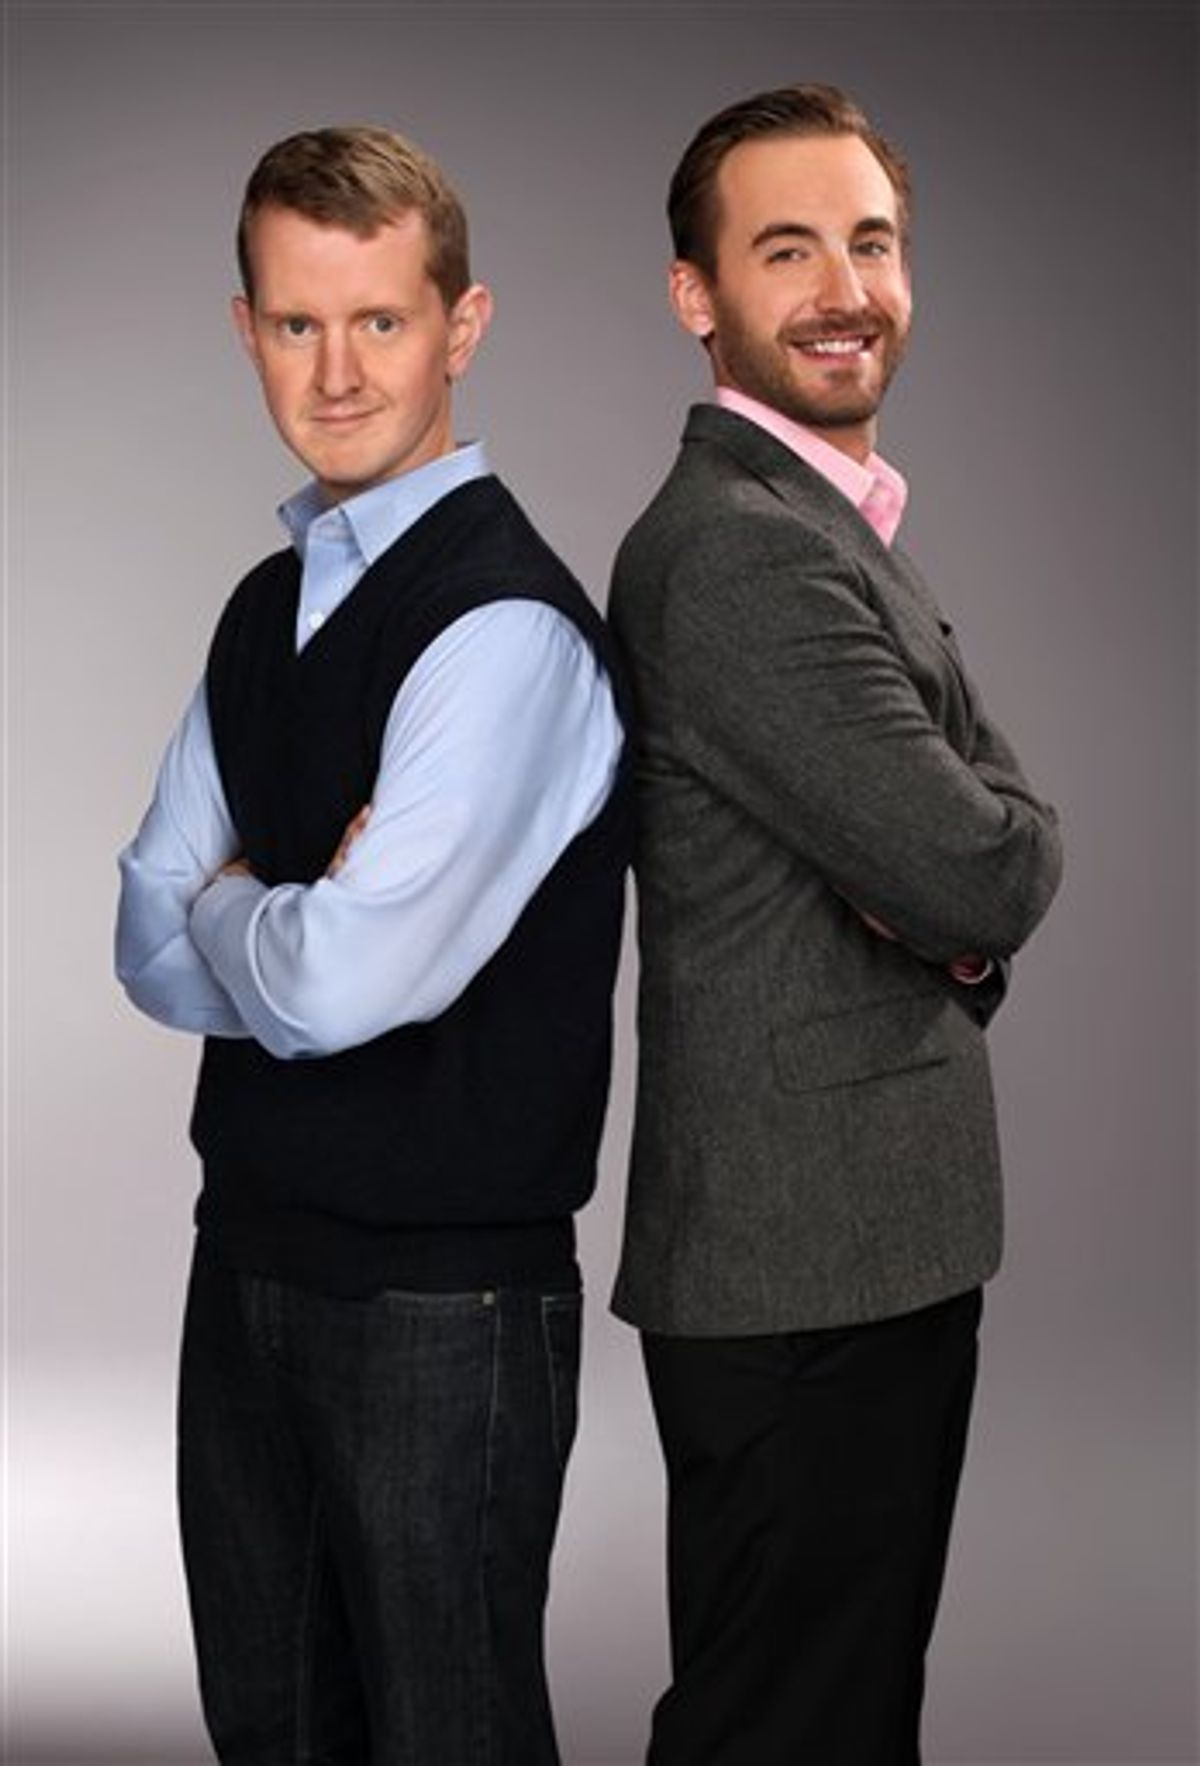 """In this undated publicity image released by Jeopardy!, Ken Jennings, left, and Brad Rutter, two of the most successful contestants on the game show """"Jeopardy!,"""" are shown. Jennings and Rutter two of the venerable game show's most successful champions, will play two games against """"Watson,"""" a computer program developed by IBM's artificial intelligence team. The matches will be spread over three days that will air Feb. 14-16, the game show said on Tuesday, Dec. 14, 2010. (AP Photo/Jeopardy!, Charles William Bush) (AP)"""